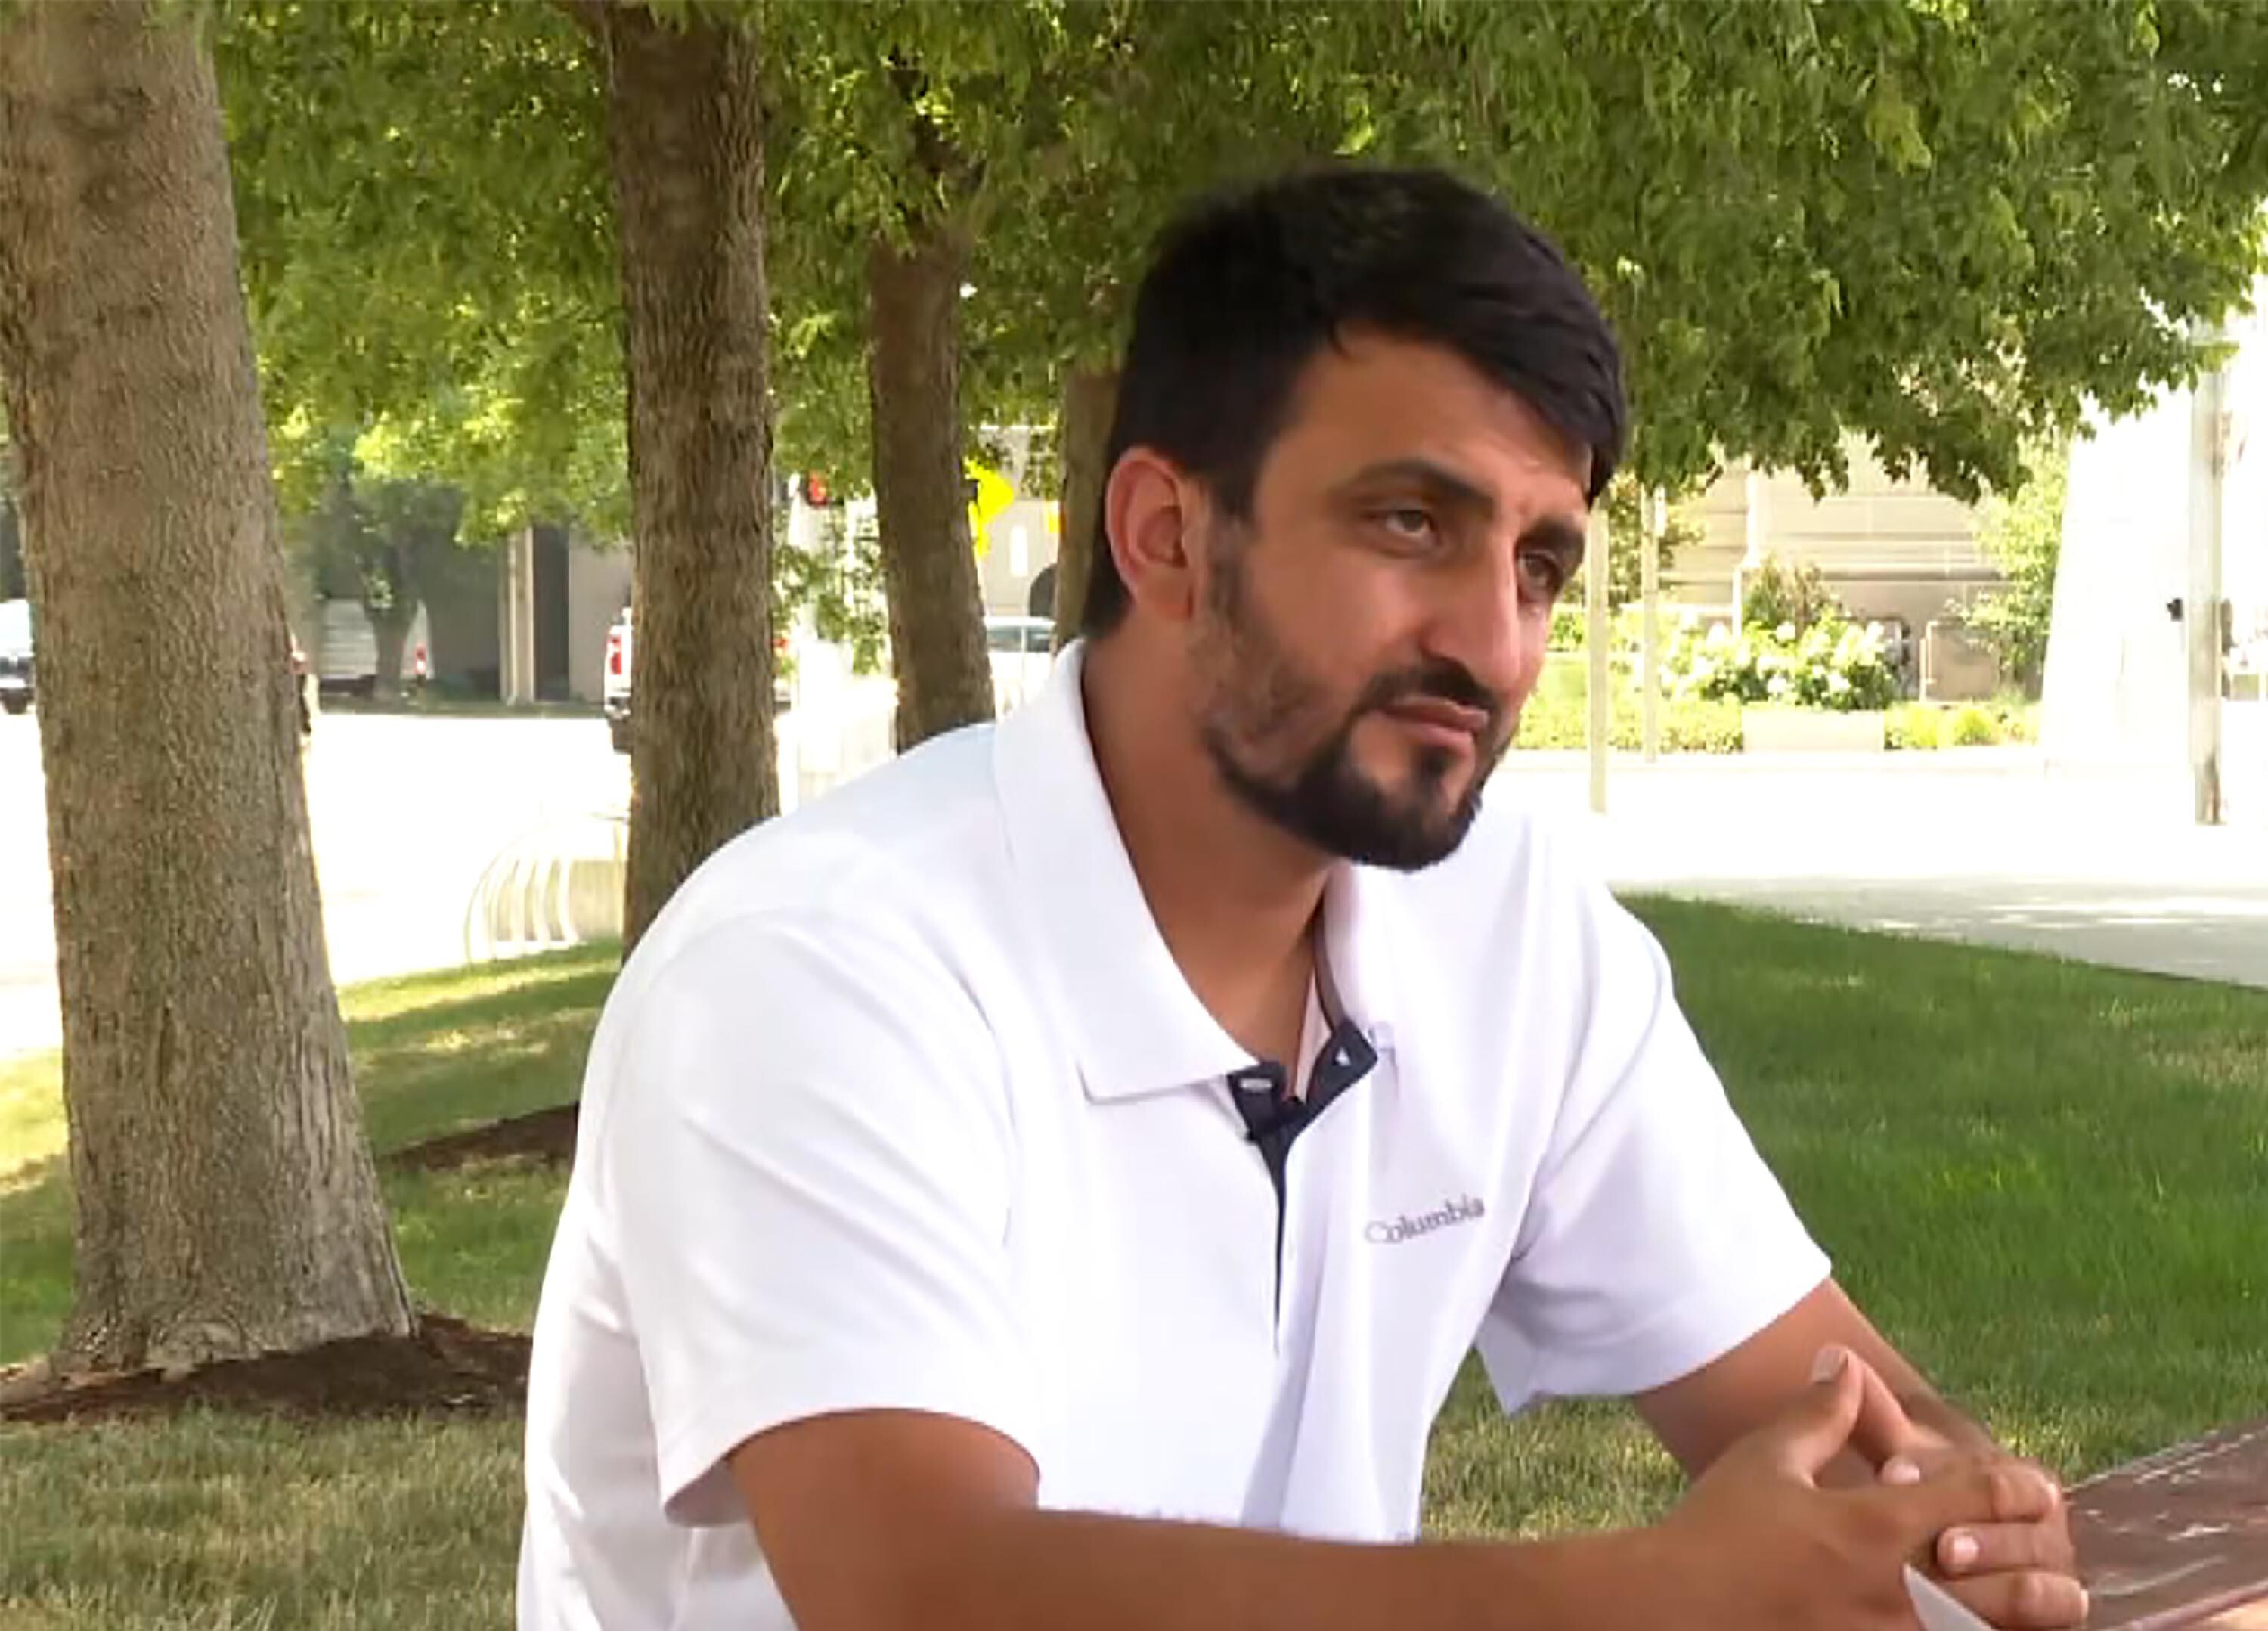 'I want to be alive': Former Afghan interpreter fights to stay in US